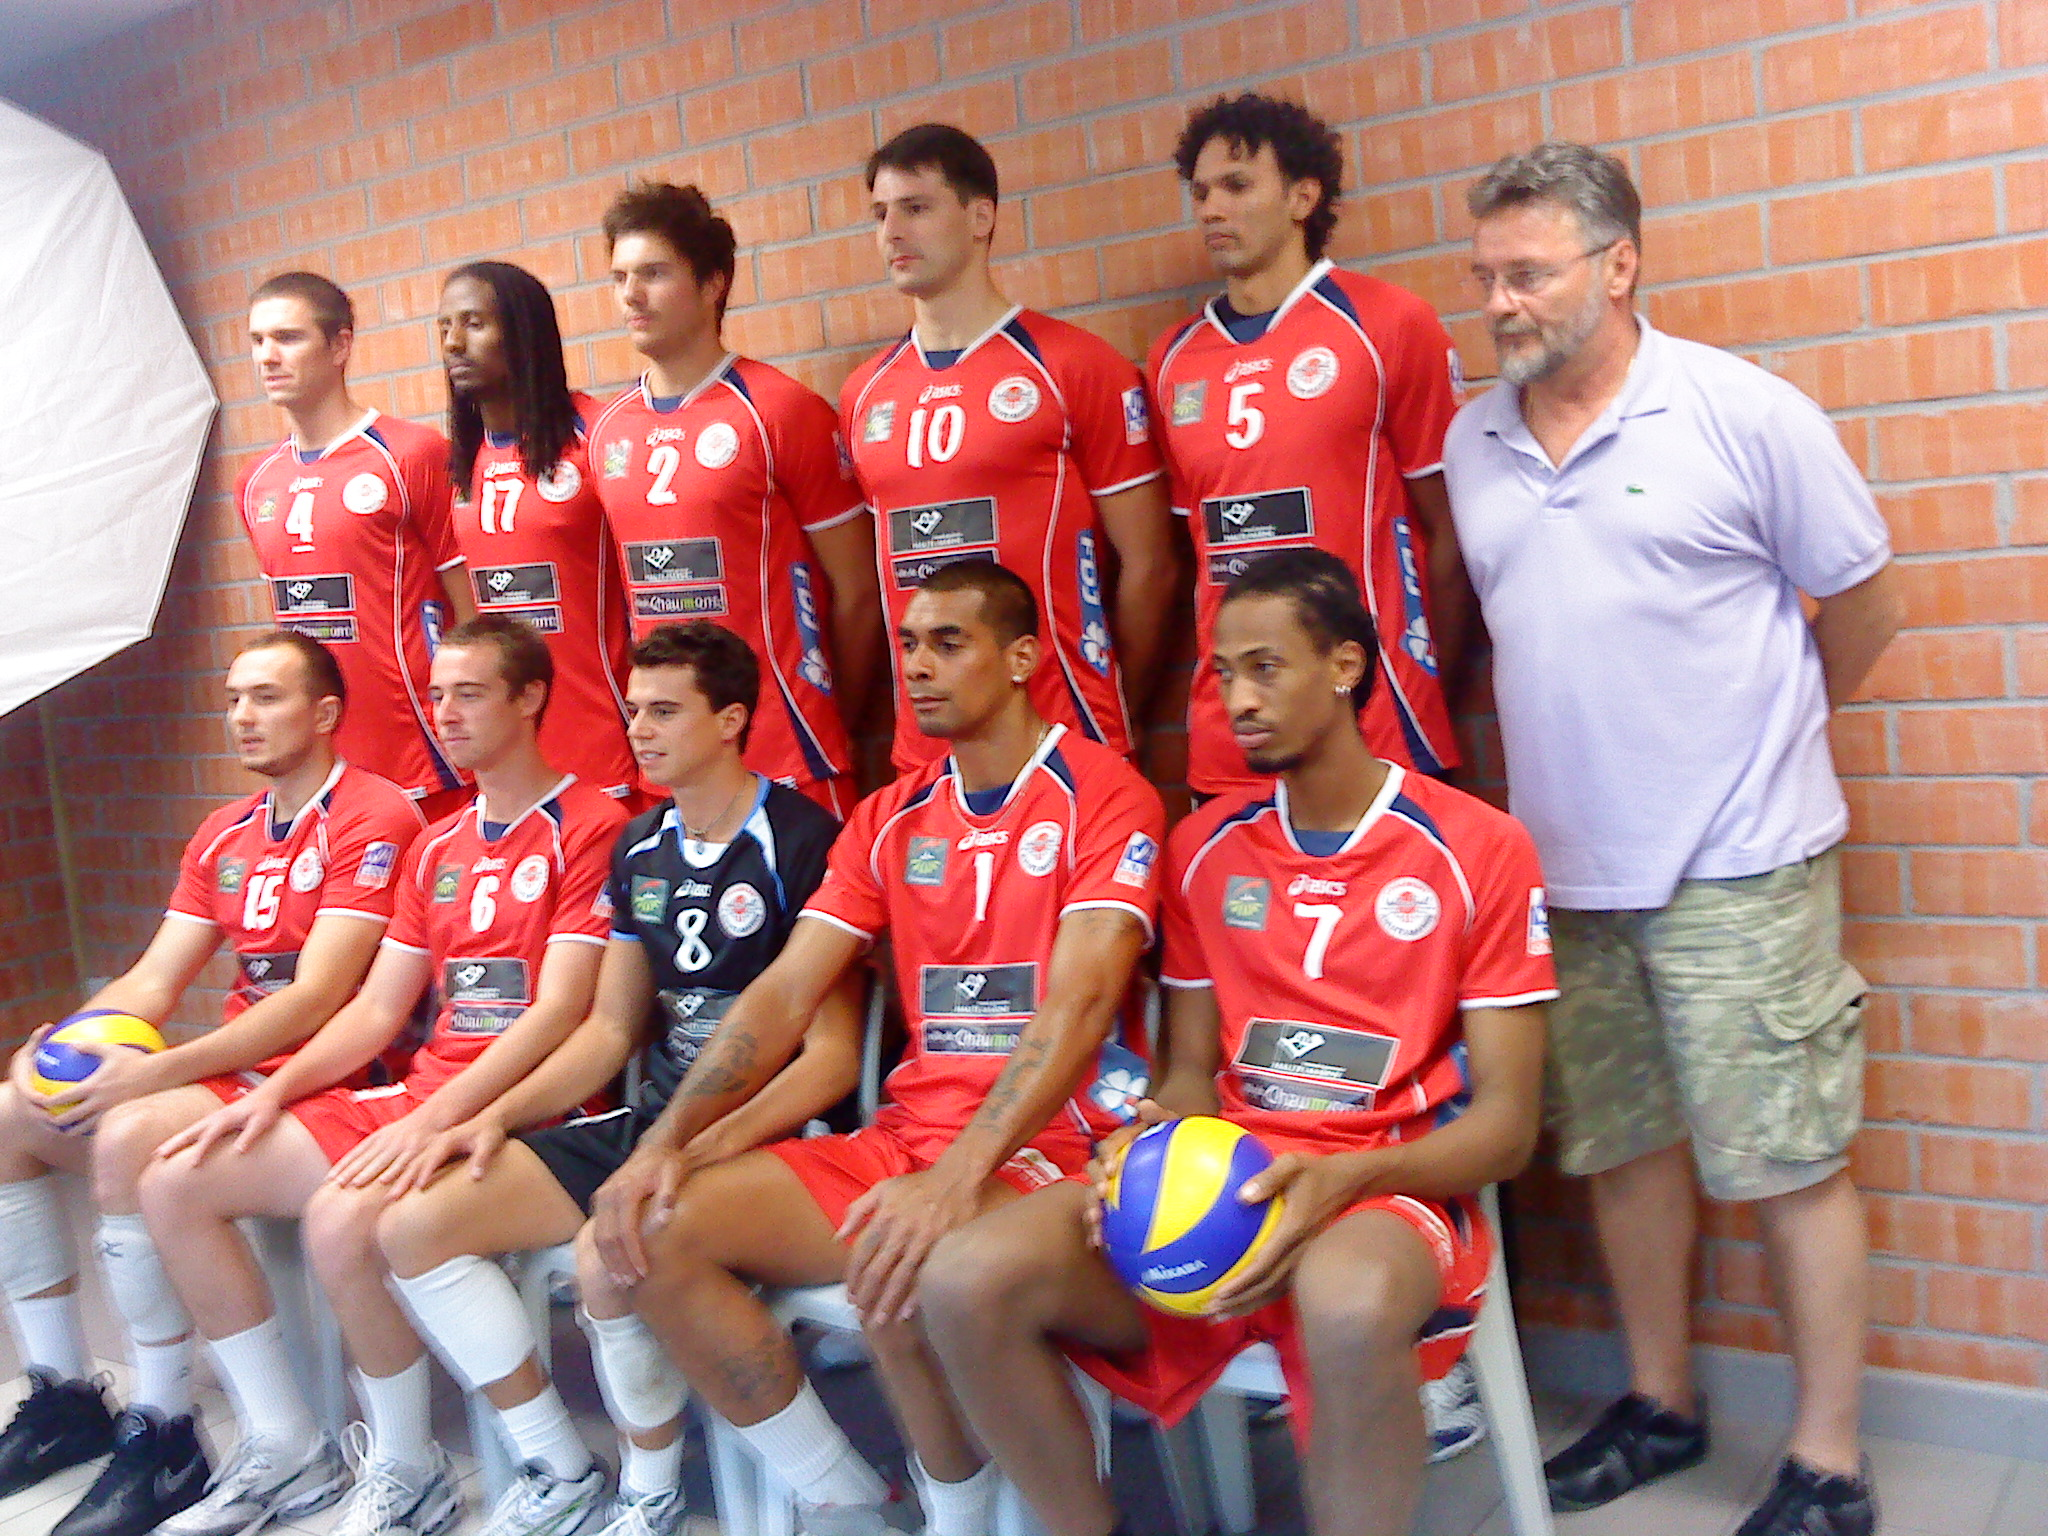 Chaumont_volley_2010